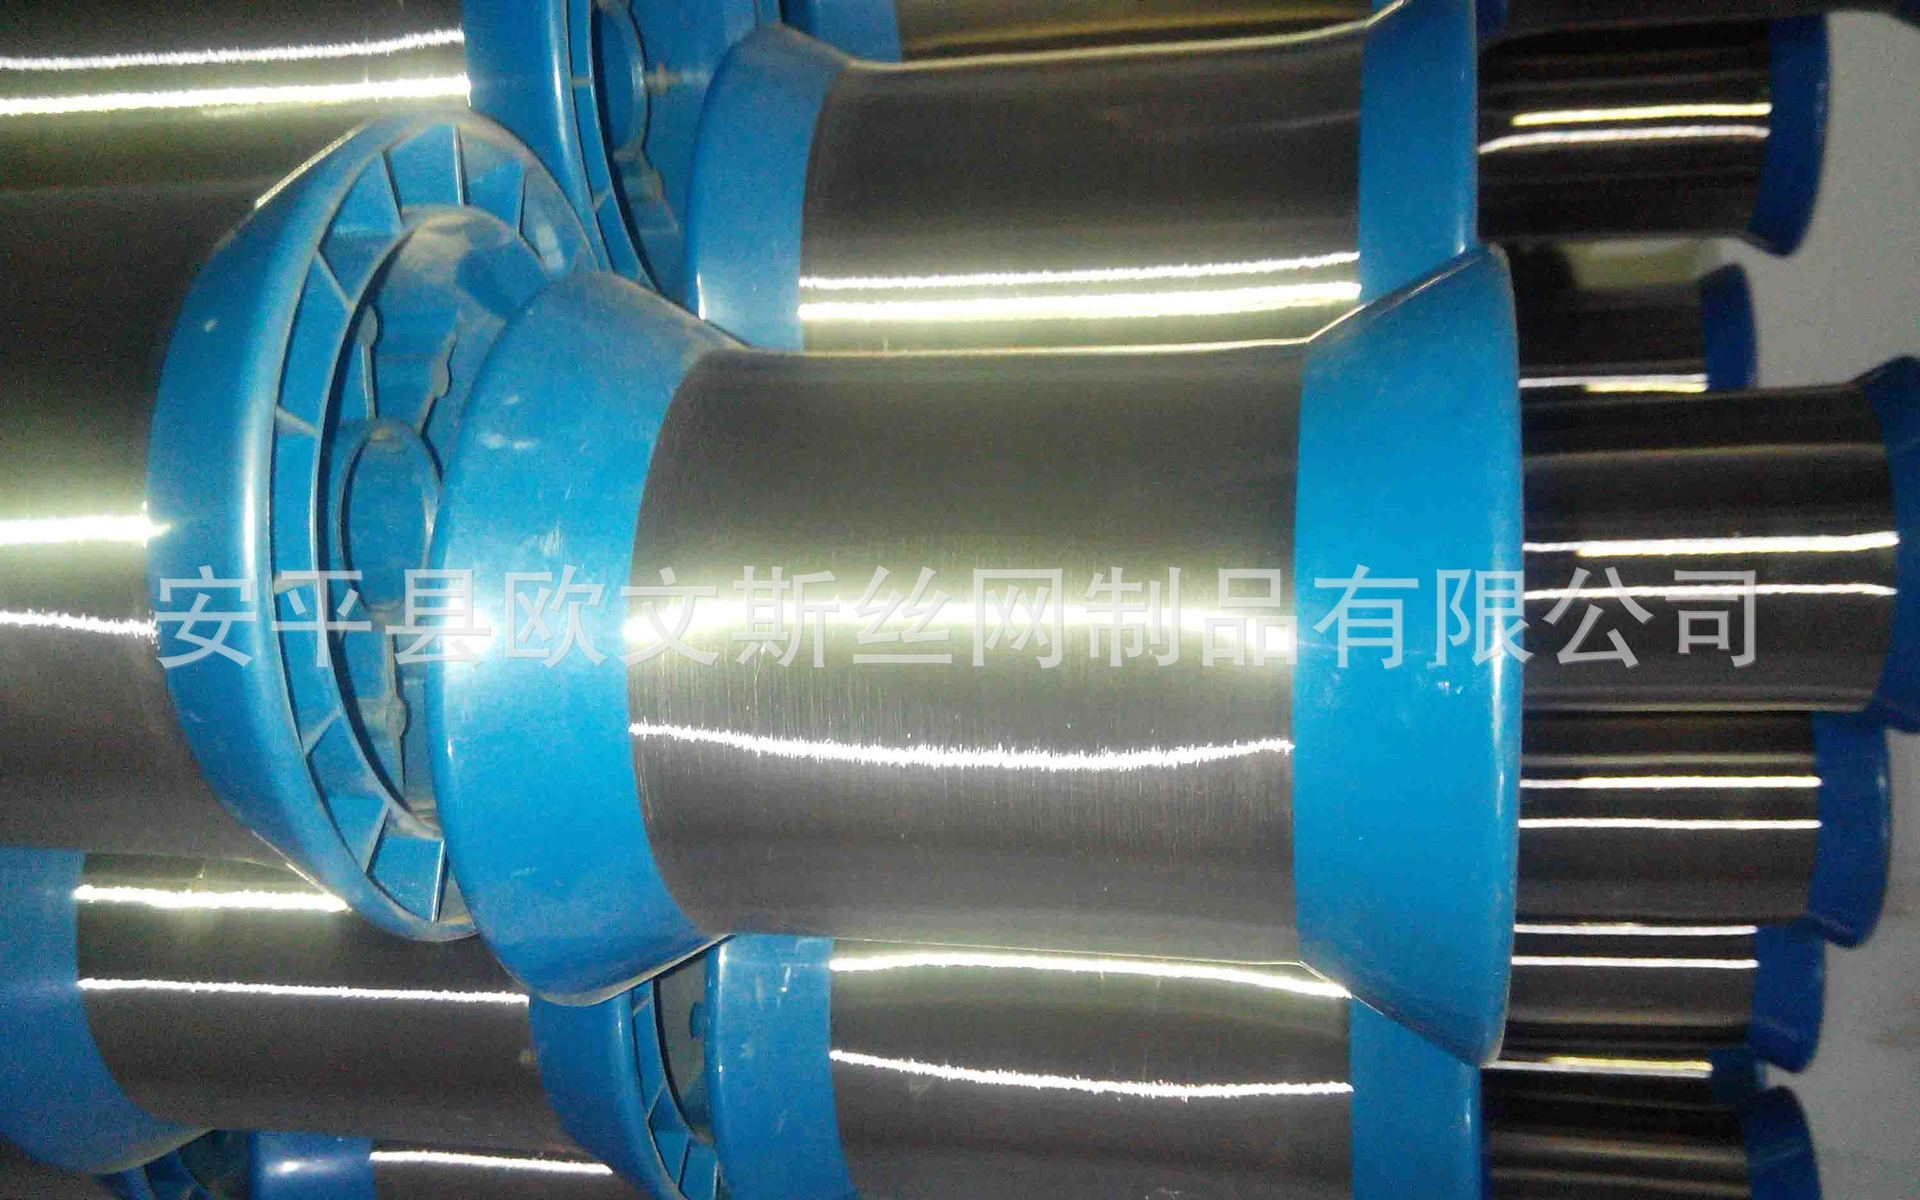 NLSX inox   Supply of high-purity raw materials N6 Jinchuan nickel wire 0.0018-0.05mm